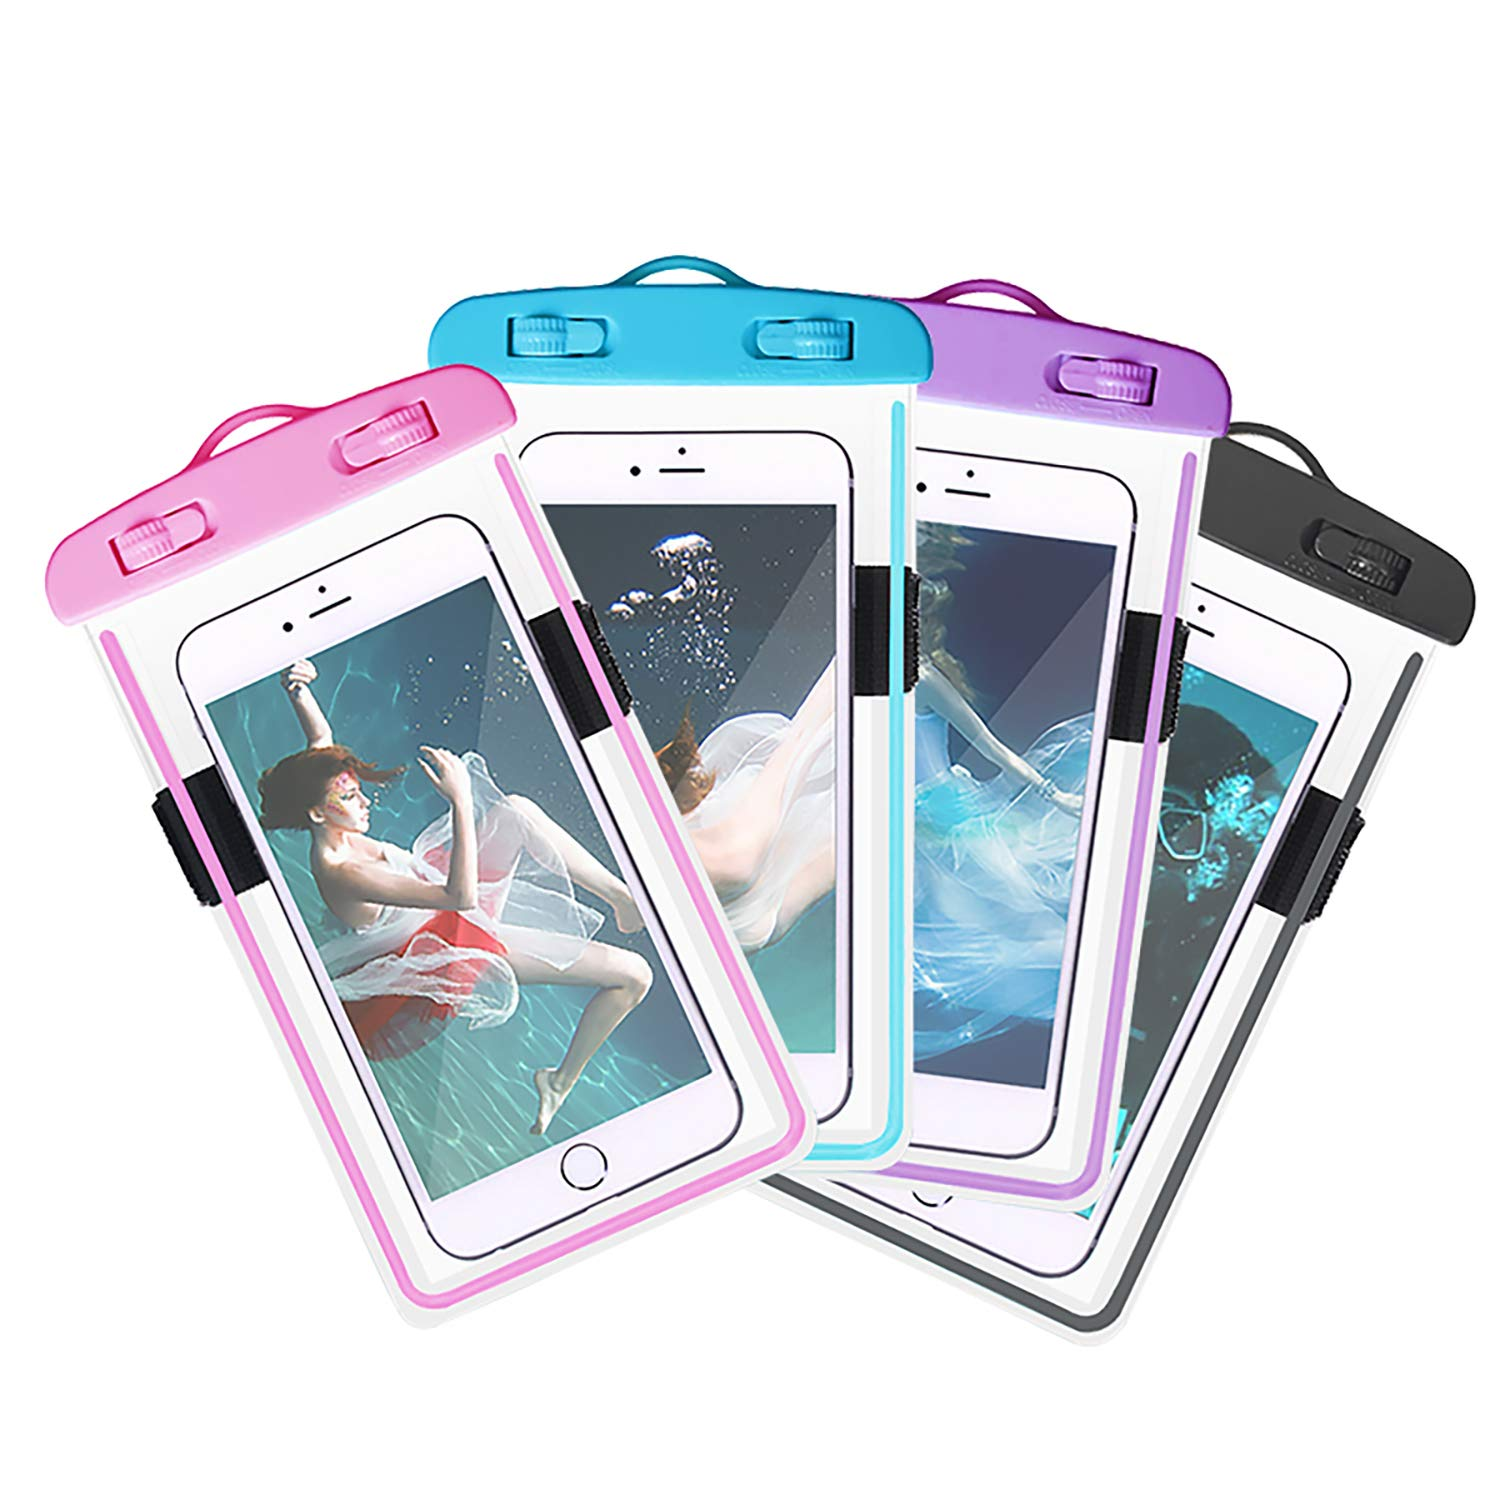 4-Pack Waterproof Case with Armband & Neck Strap, Luminous Transparent Cellphone Dry Bag Phone Pouch for iPhone X/8/7Plus/6S, Huawei, Samsung Galaxy Note HTC LG Sony up to 6.0'' (Assorted E) by Yii Design (Image #1)